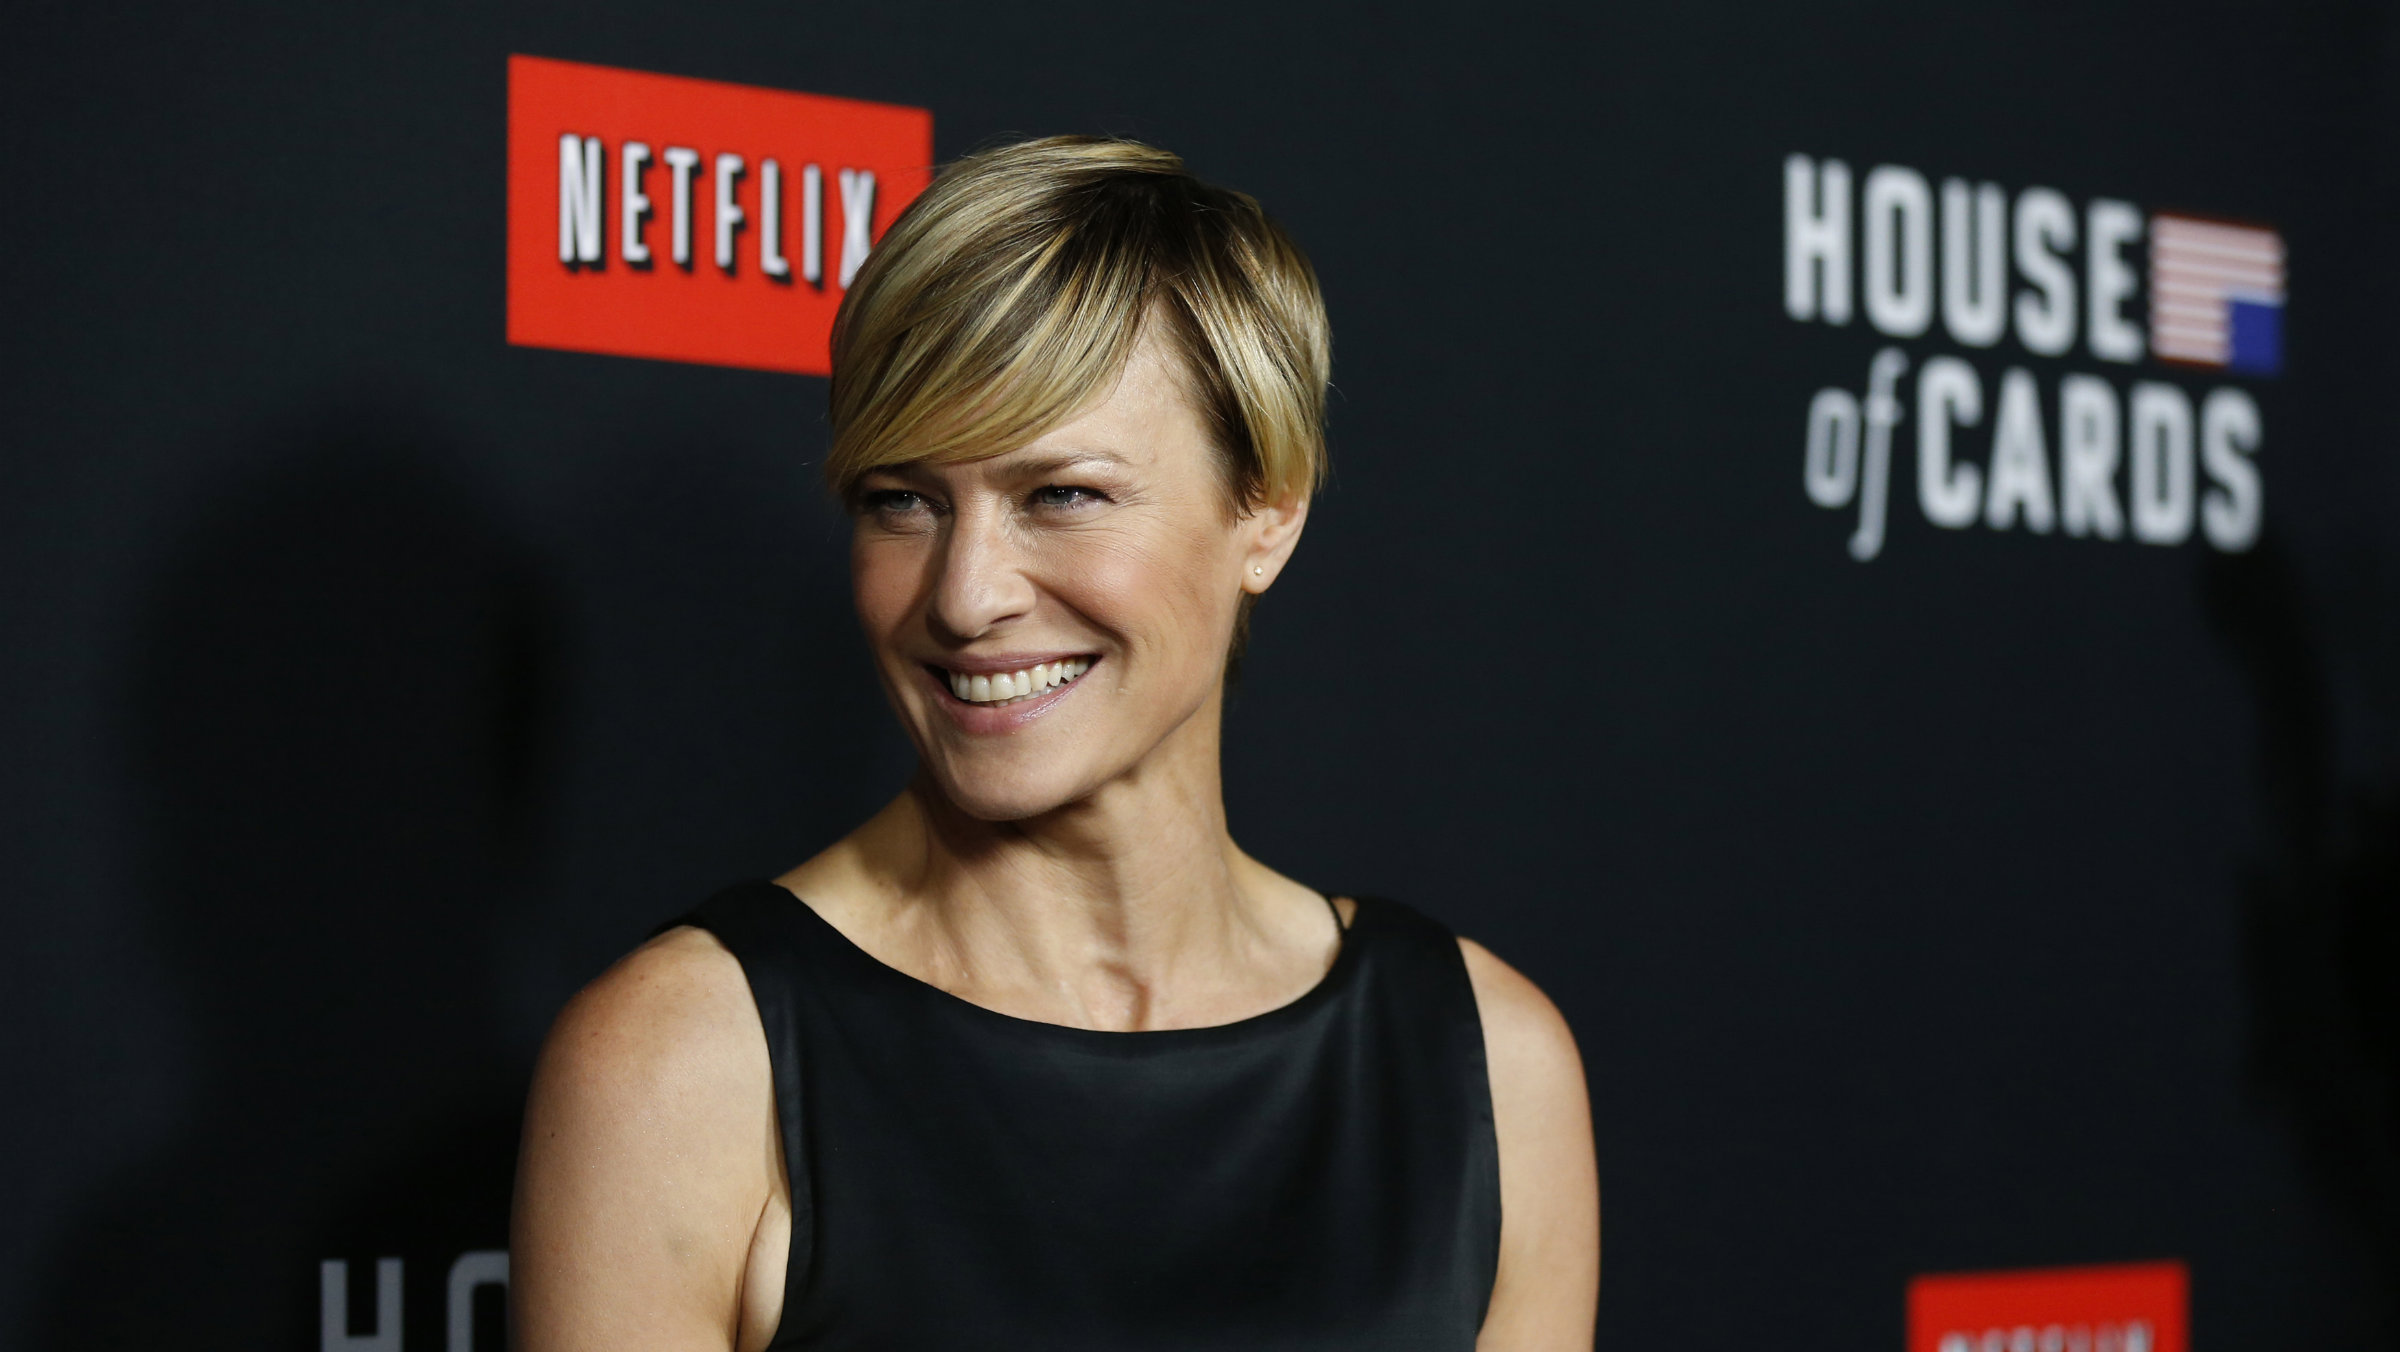 Robin Wright, star of Netflix's House of Cards.